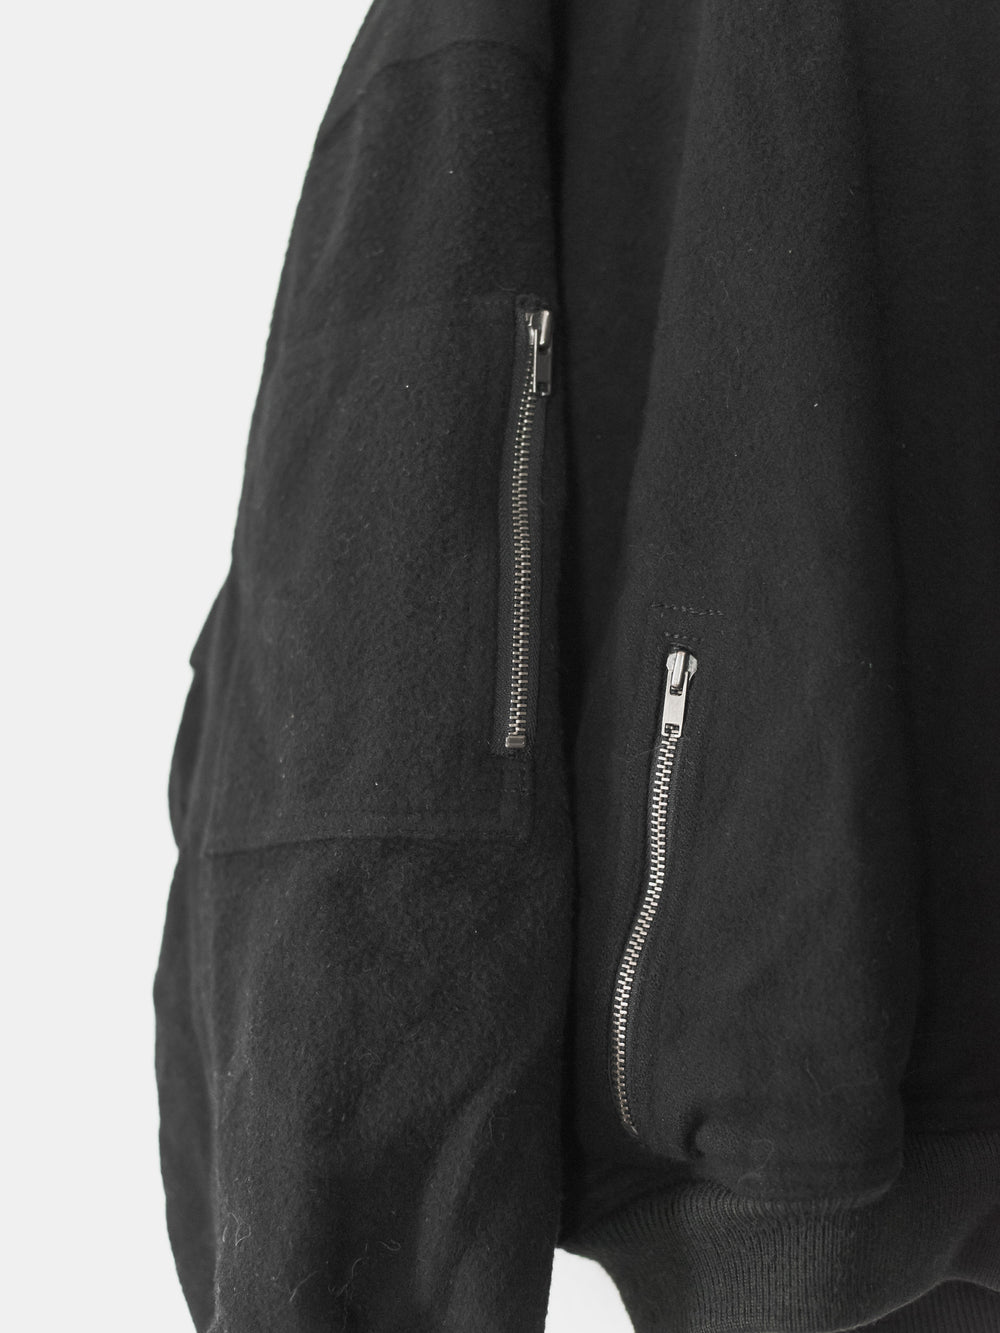 Issey Miyake Issey Sport Wool MA-1 Bomber